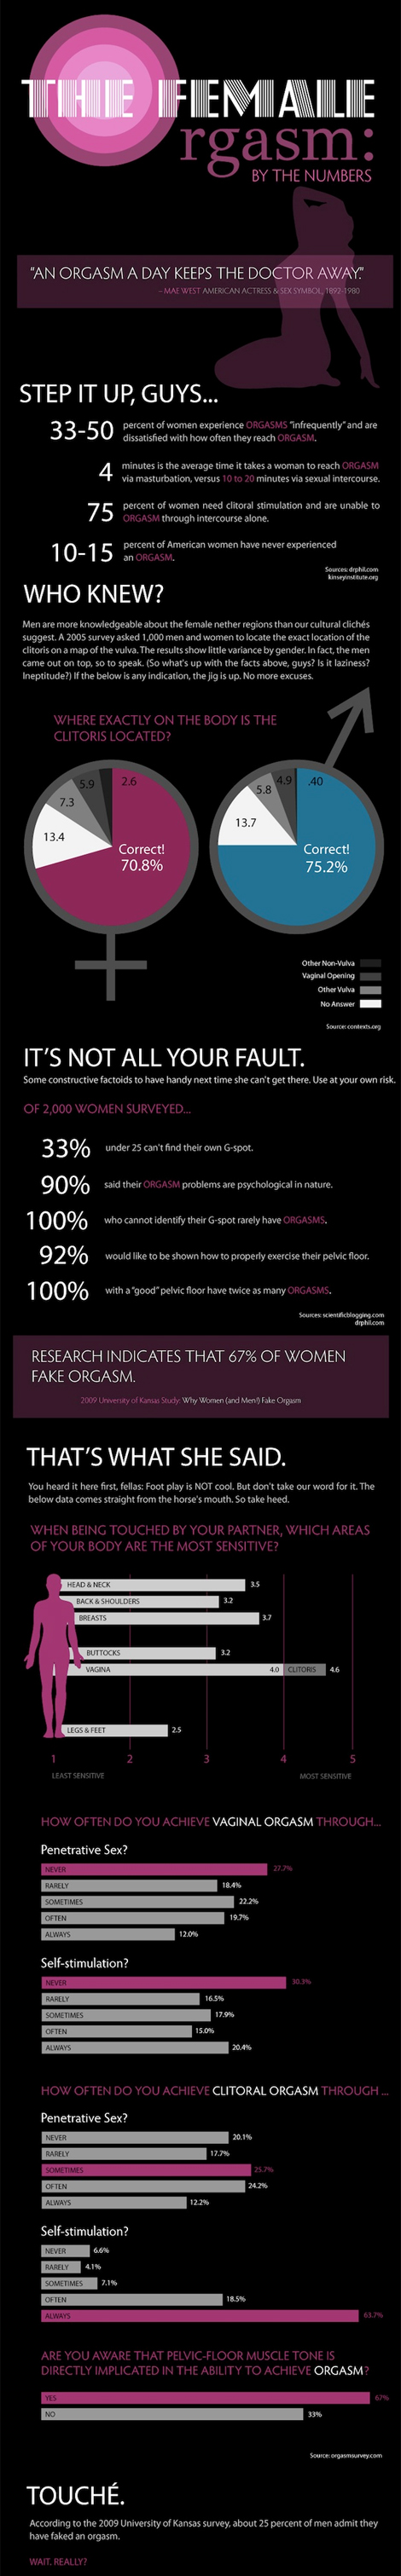 Female orgasm by the numbers infographic